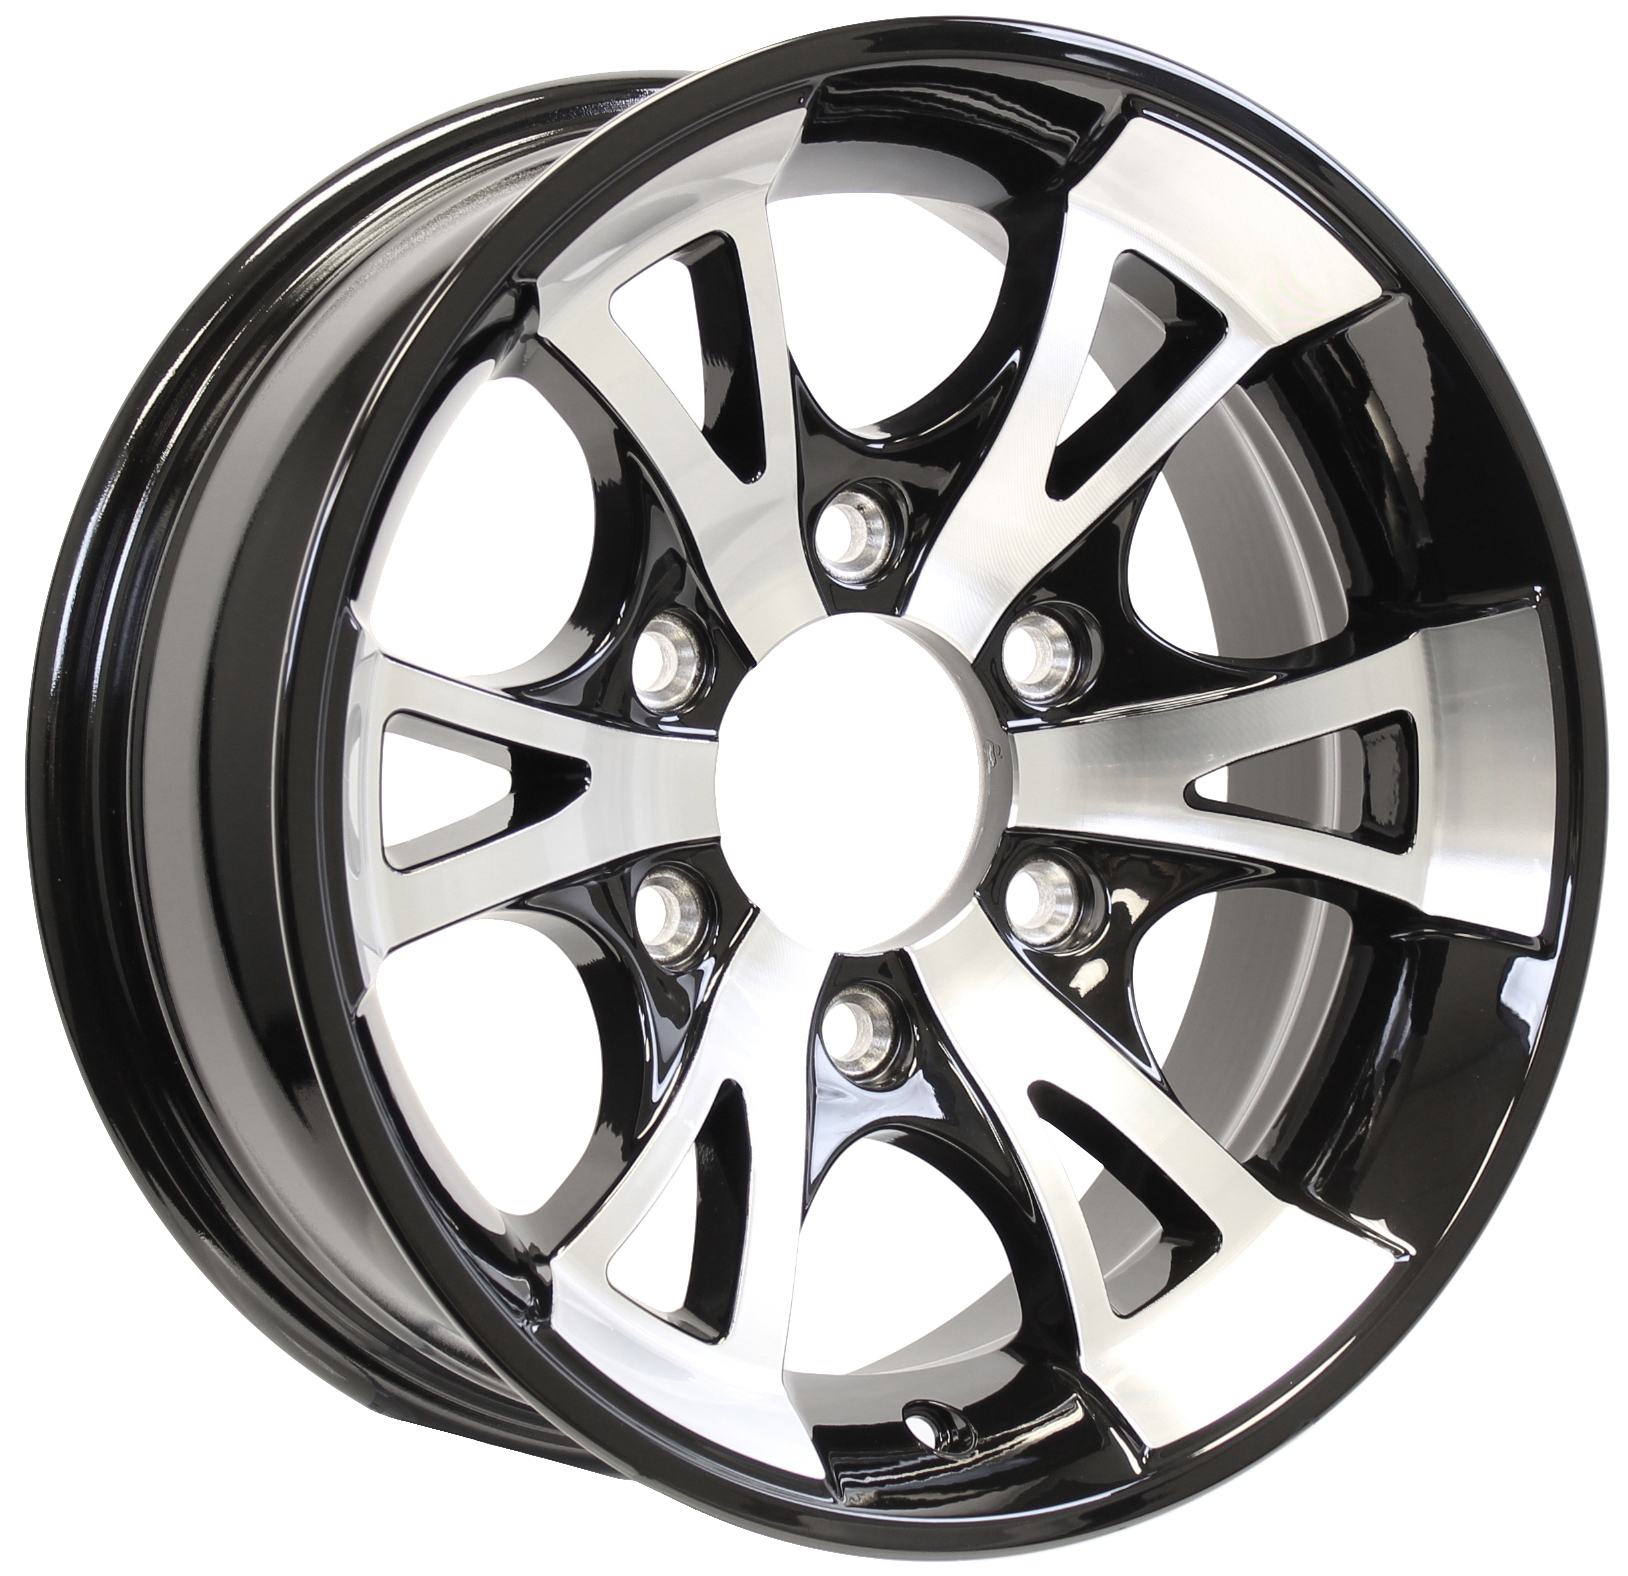 A1411- 15x6 6-5.5 Black Aluminum Trailer Wheel Image